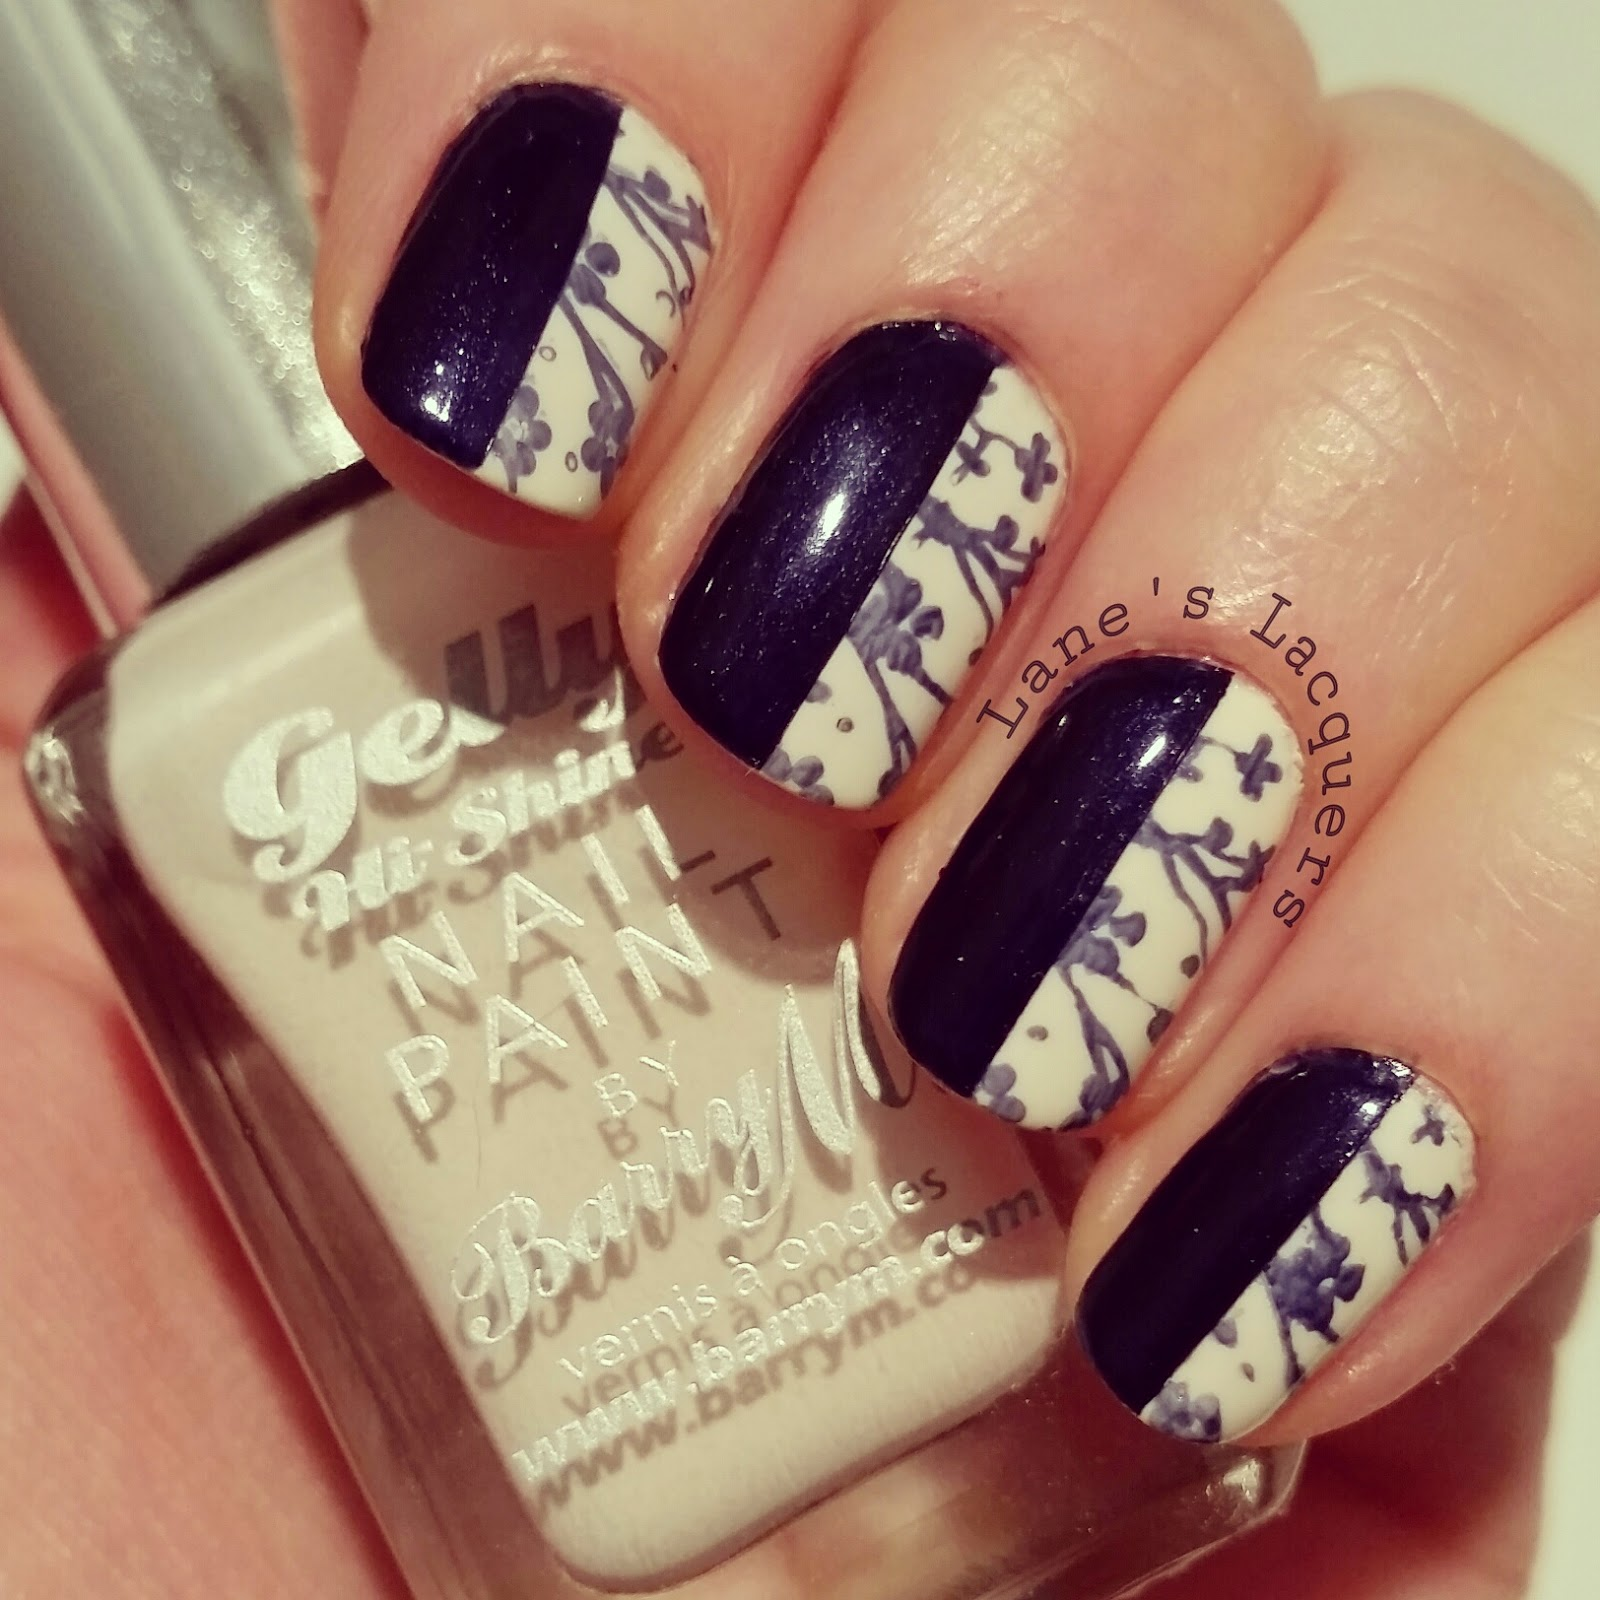 barry-m-coconut-moyou-london-navy-stamping-half-and-half-nail-art (2)